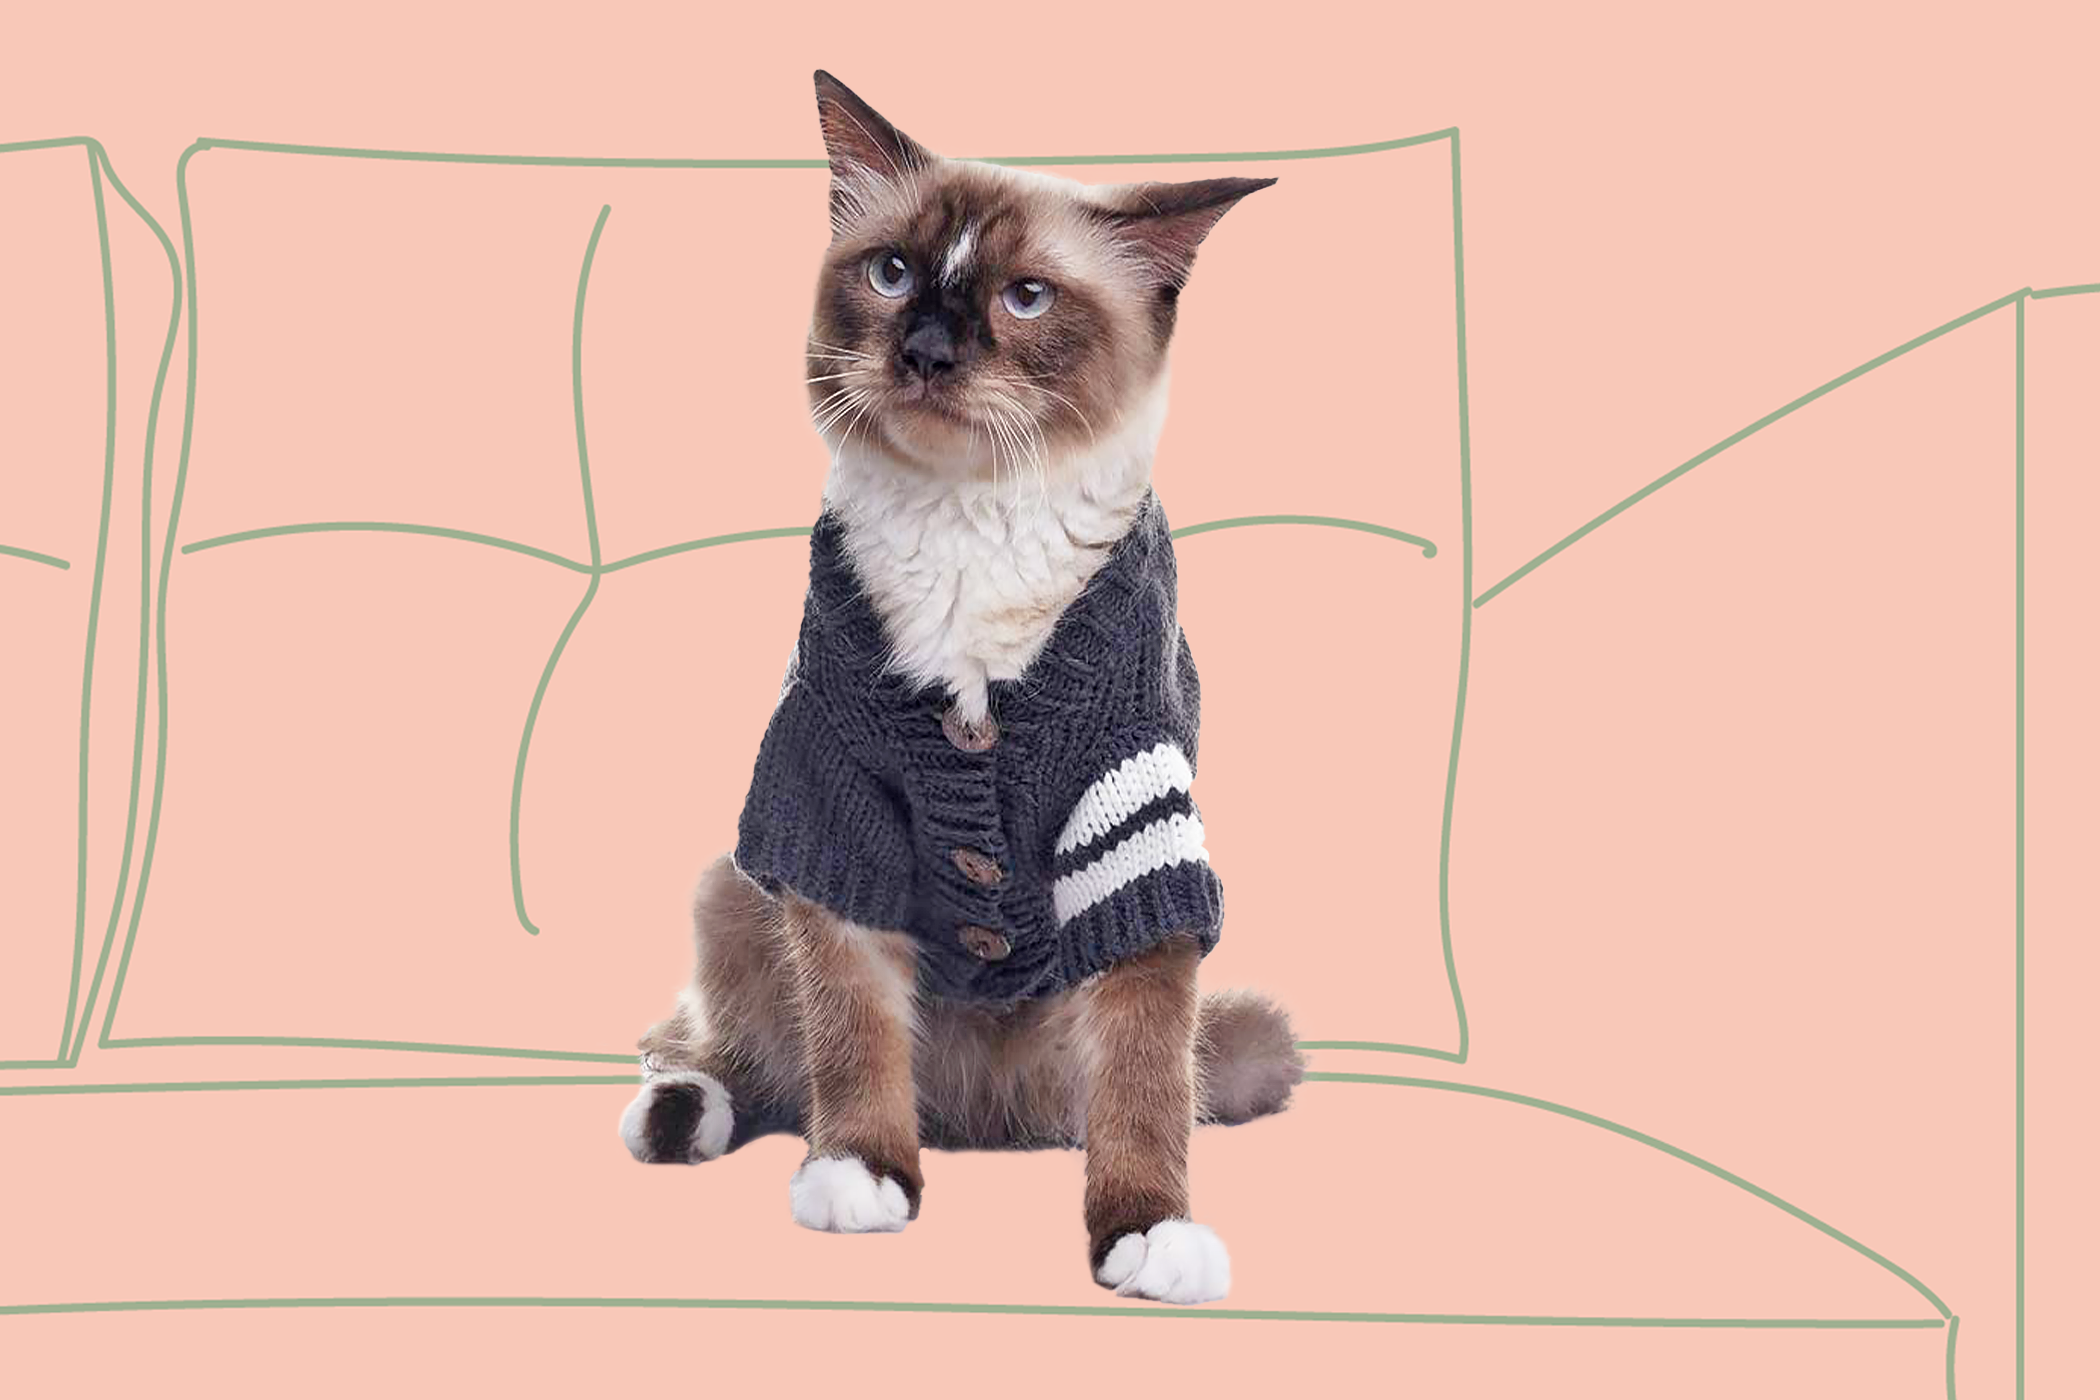 Cat wearing a blue sweater on a pink background